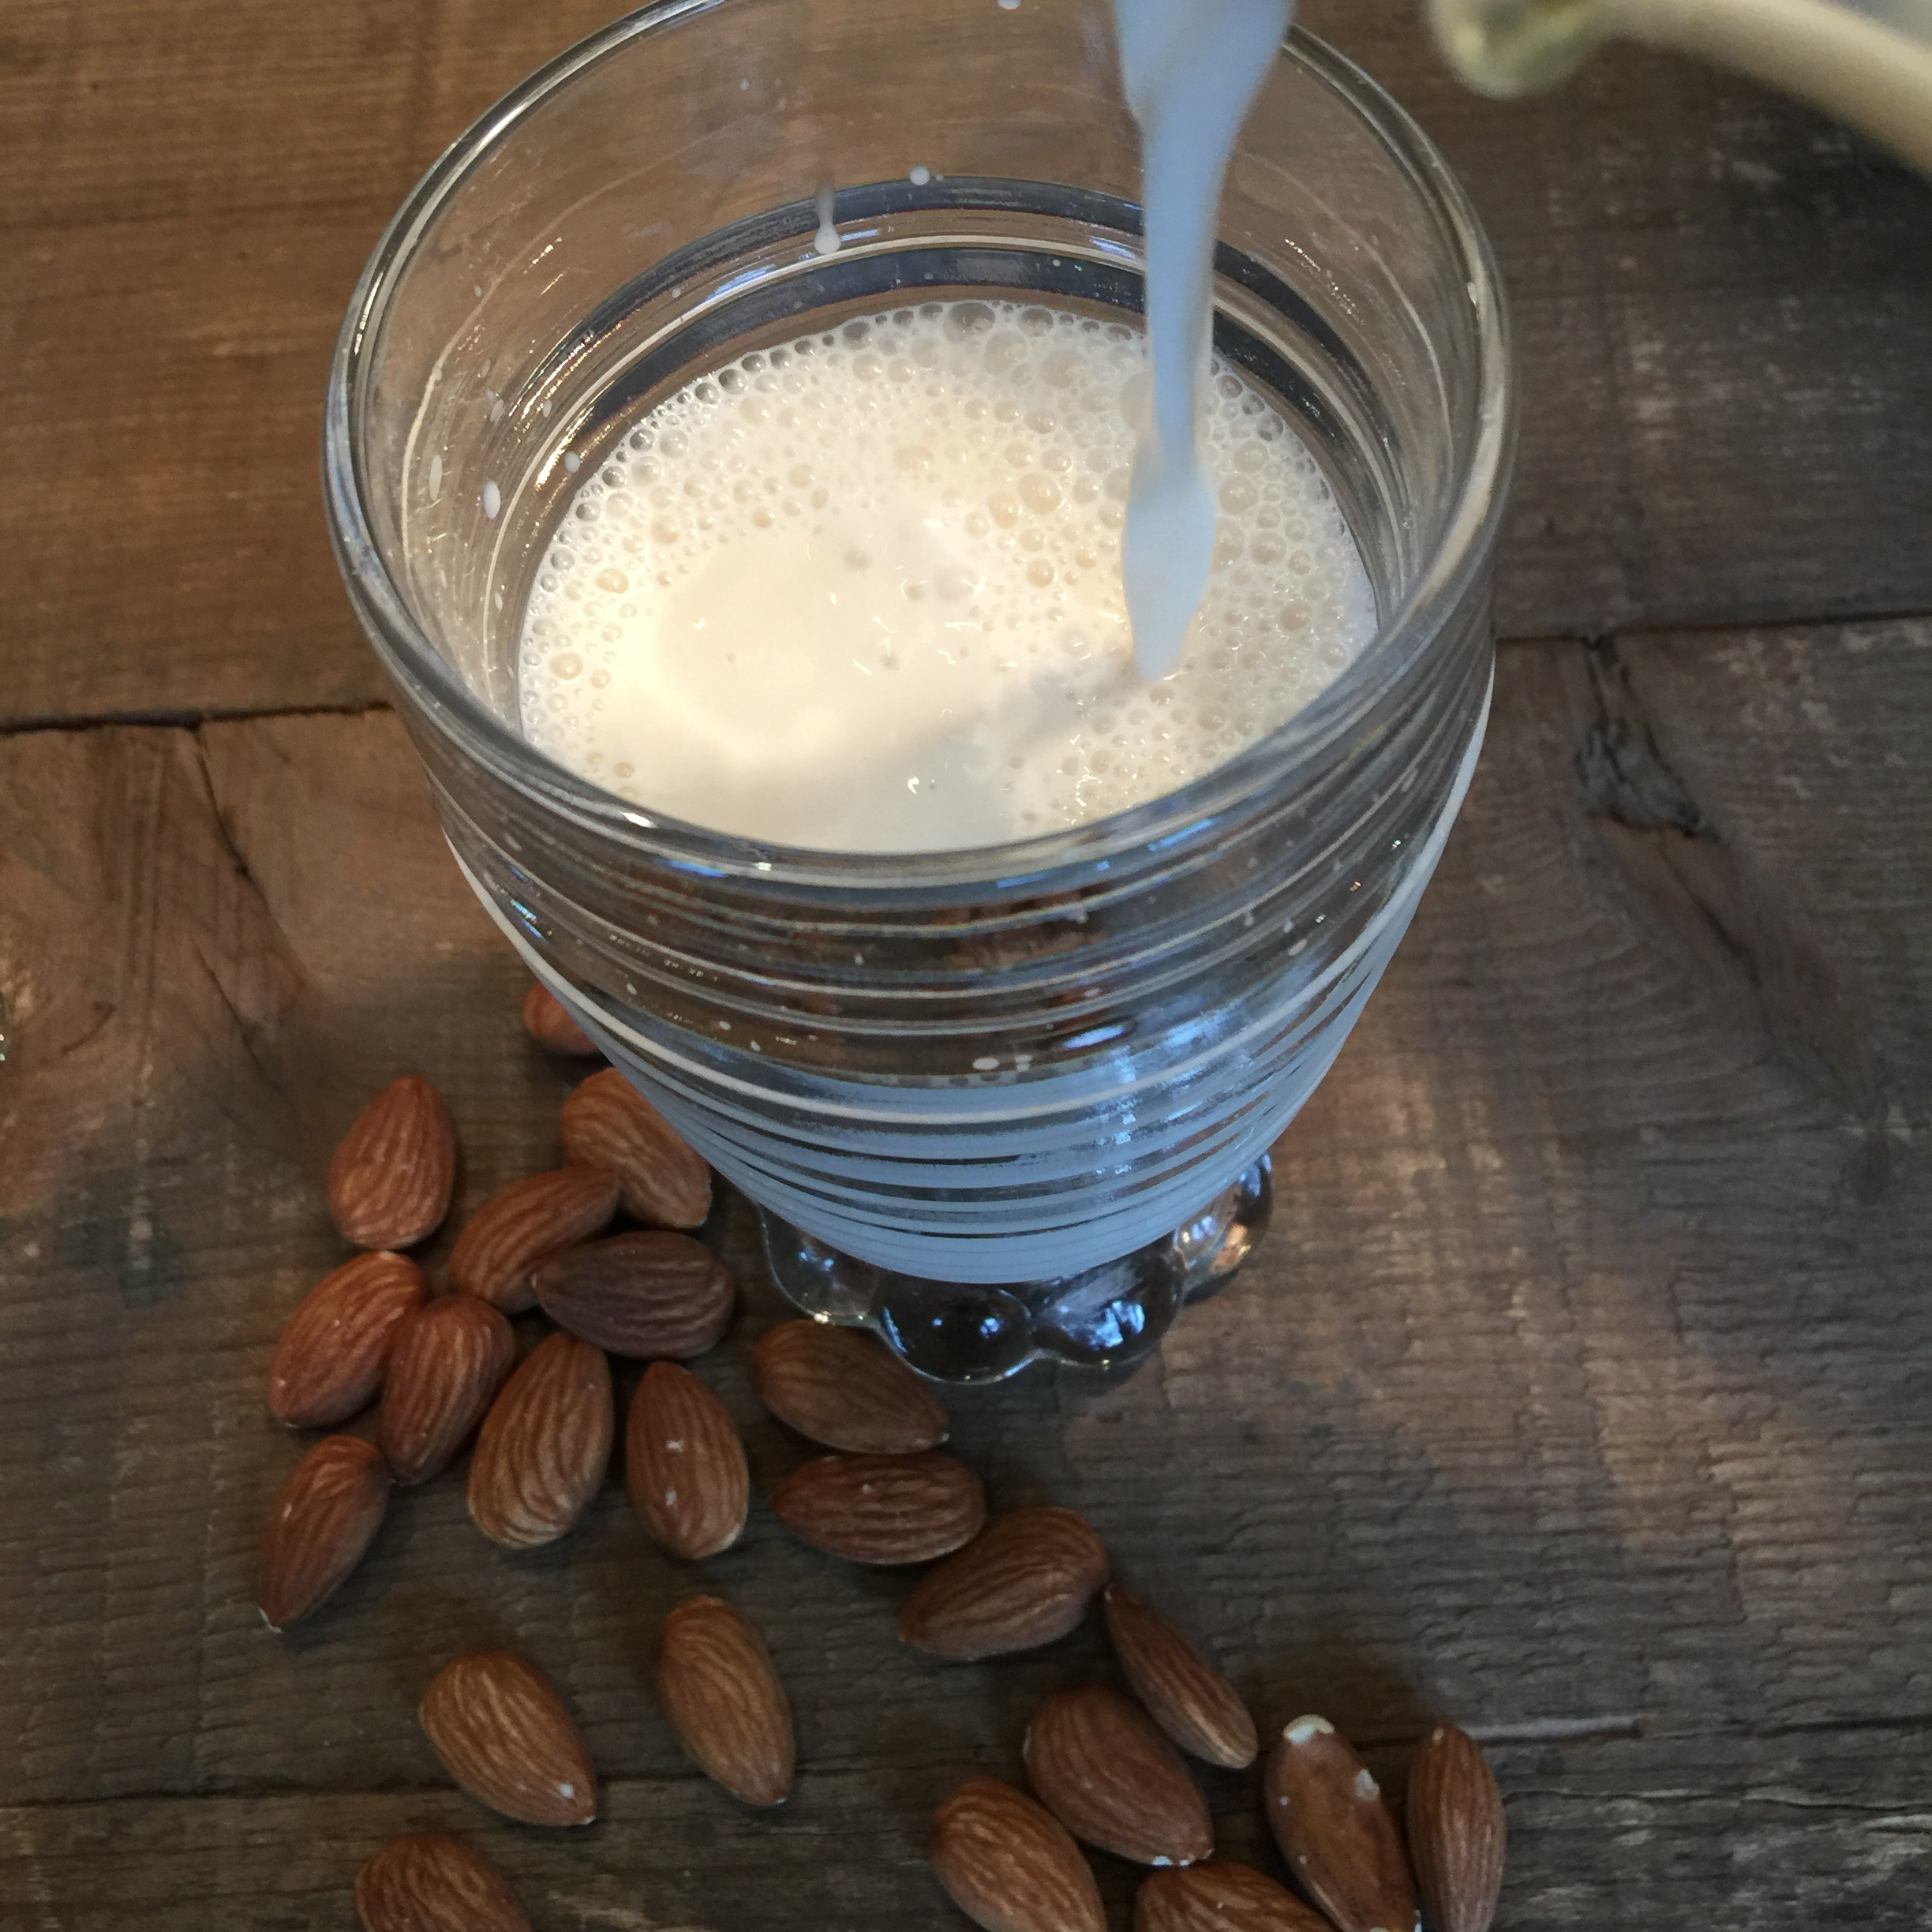 Easy Almond milk recipe, Almond Milk Recipes, almond milk benefits, benefits of almond milk, almond milk nutrition, making almond milk, make almond milk, how do you make almond milk